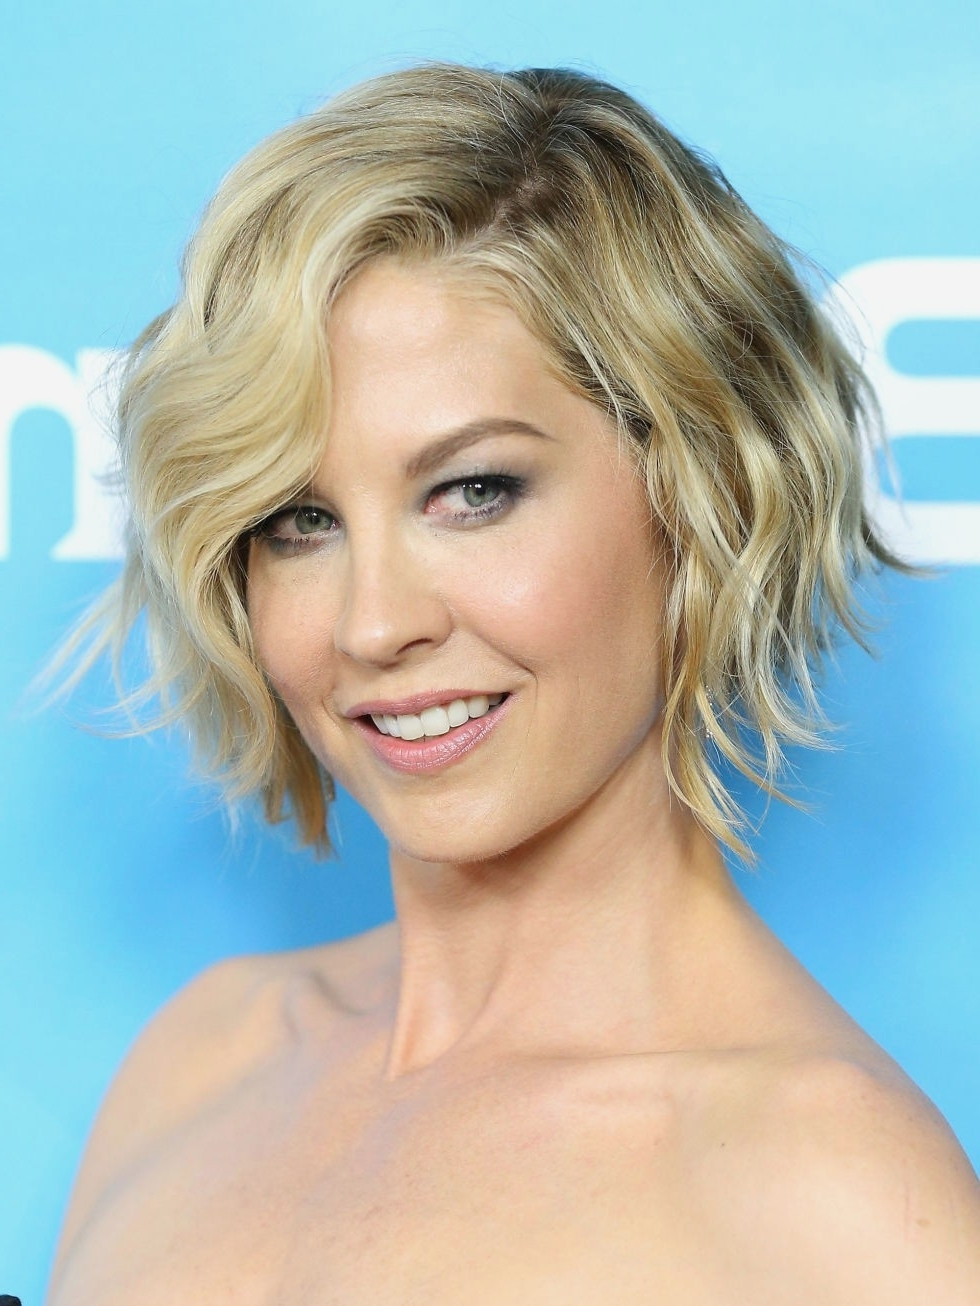 Short Hairstyles : Awesome Short Shaggy Hairstyles For Round Faces Intended For 2017 Short Shaggy Hairstyles For Round Faces (View 10 of 15)